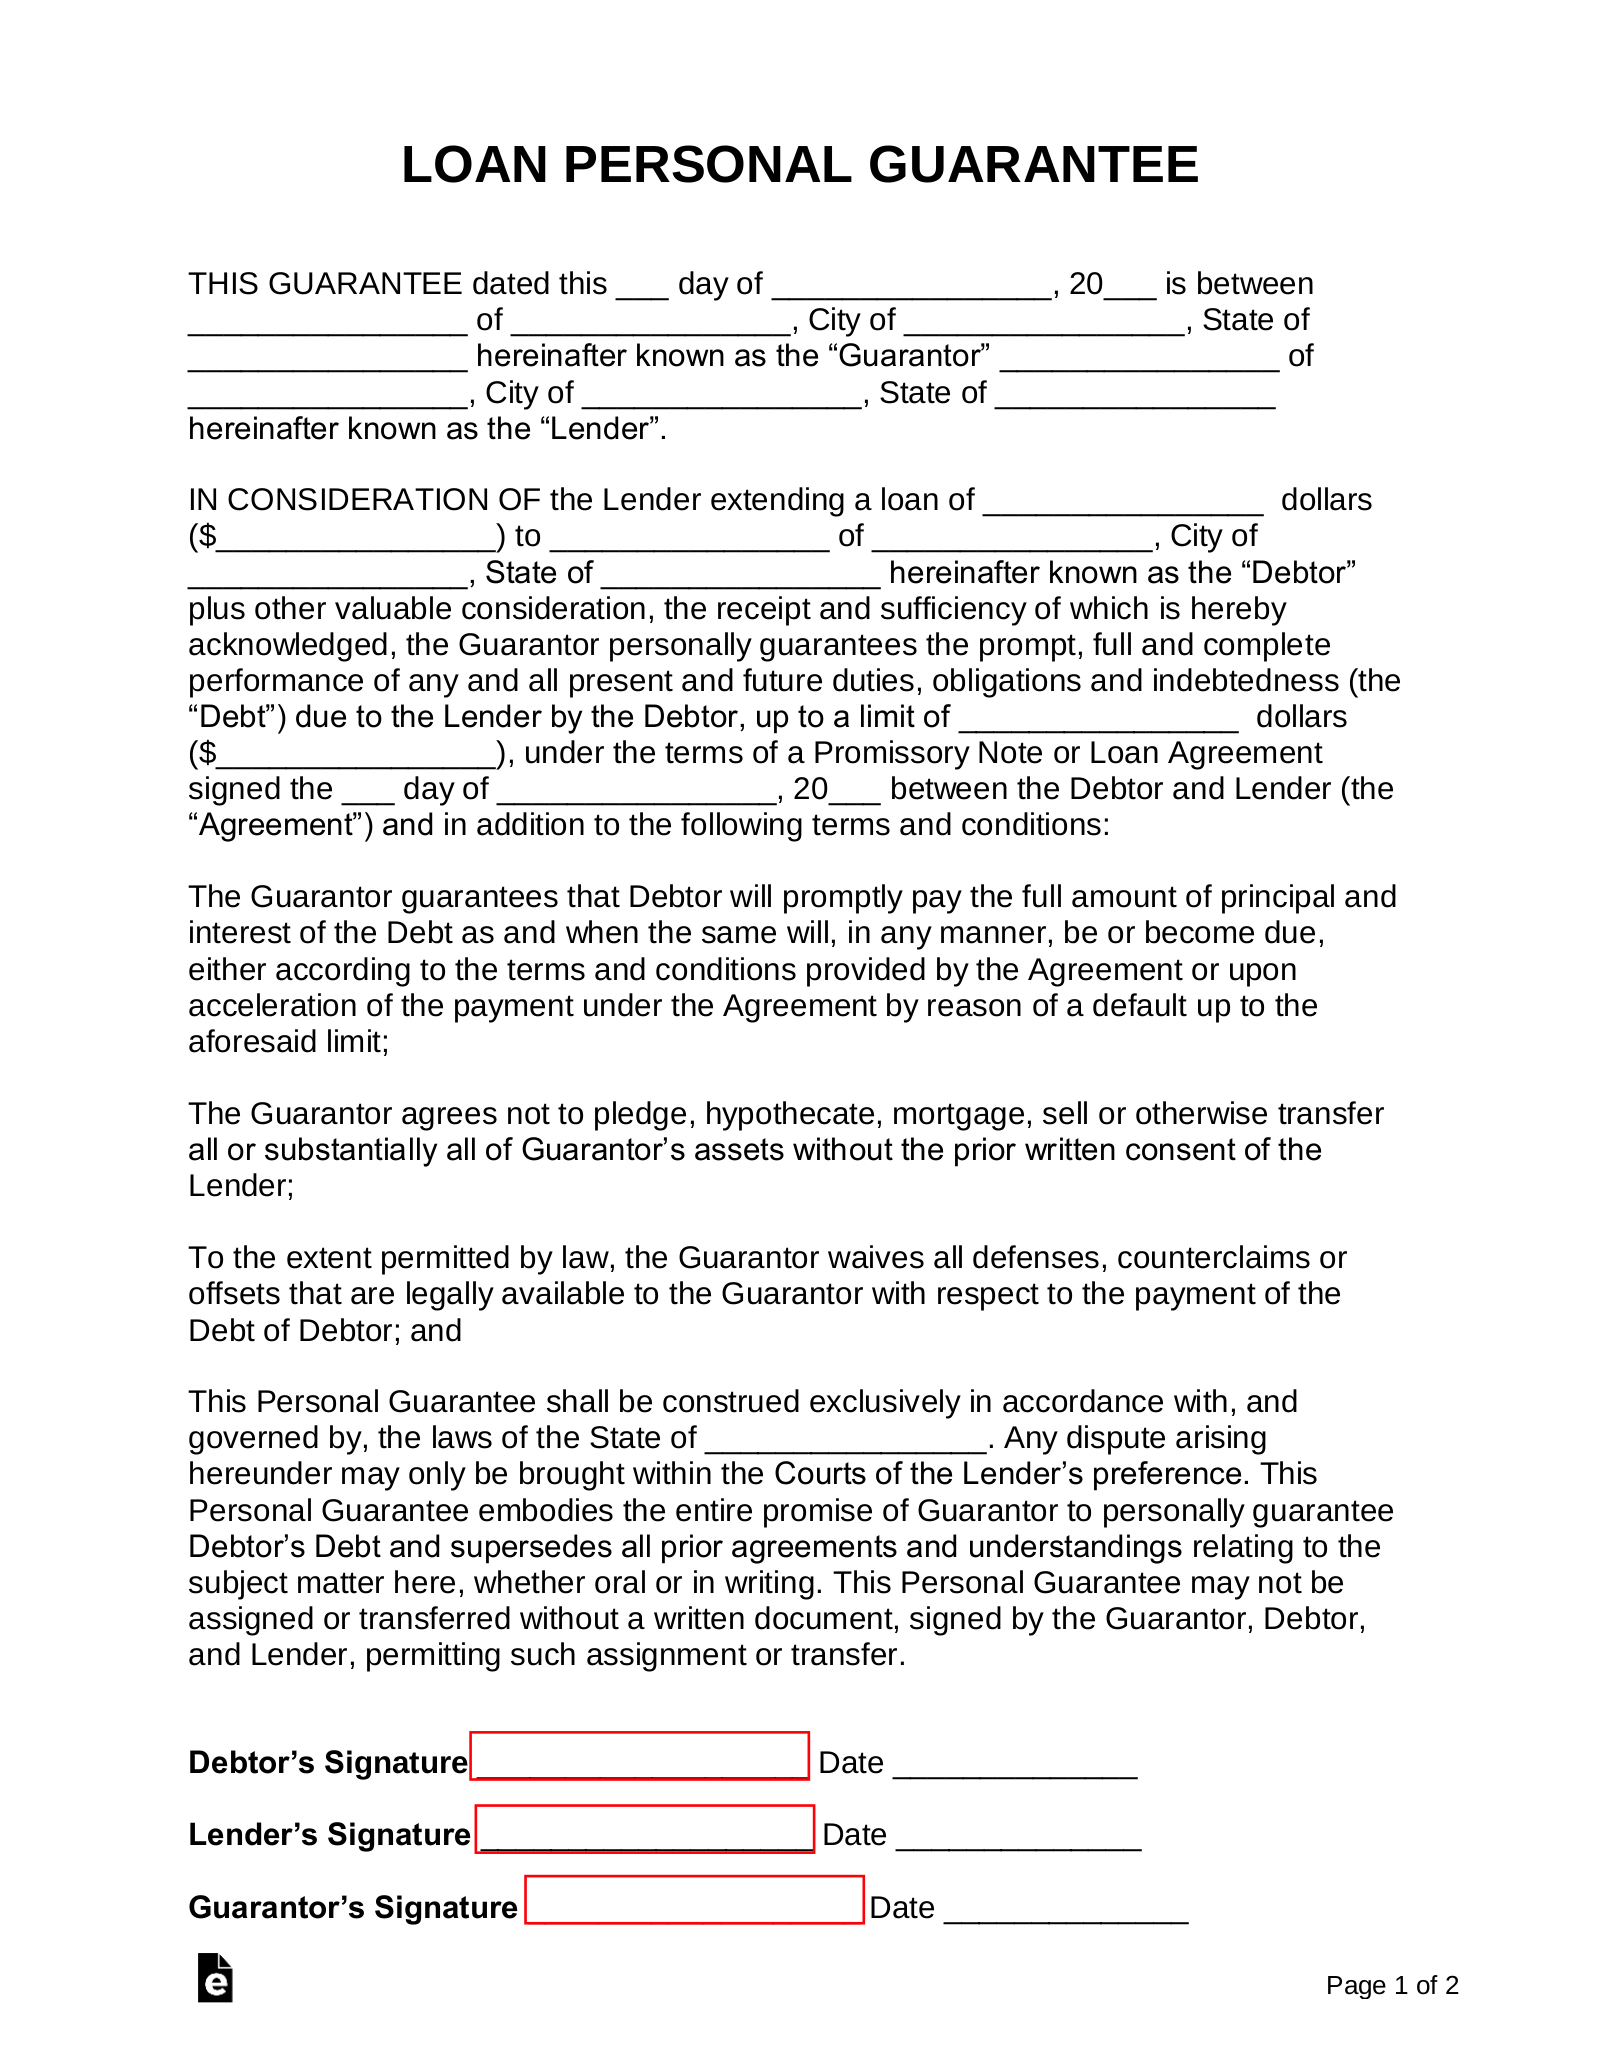 Free Loan Personal Guarantee Form Pdf Word Eforms